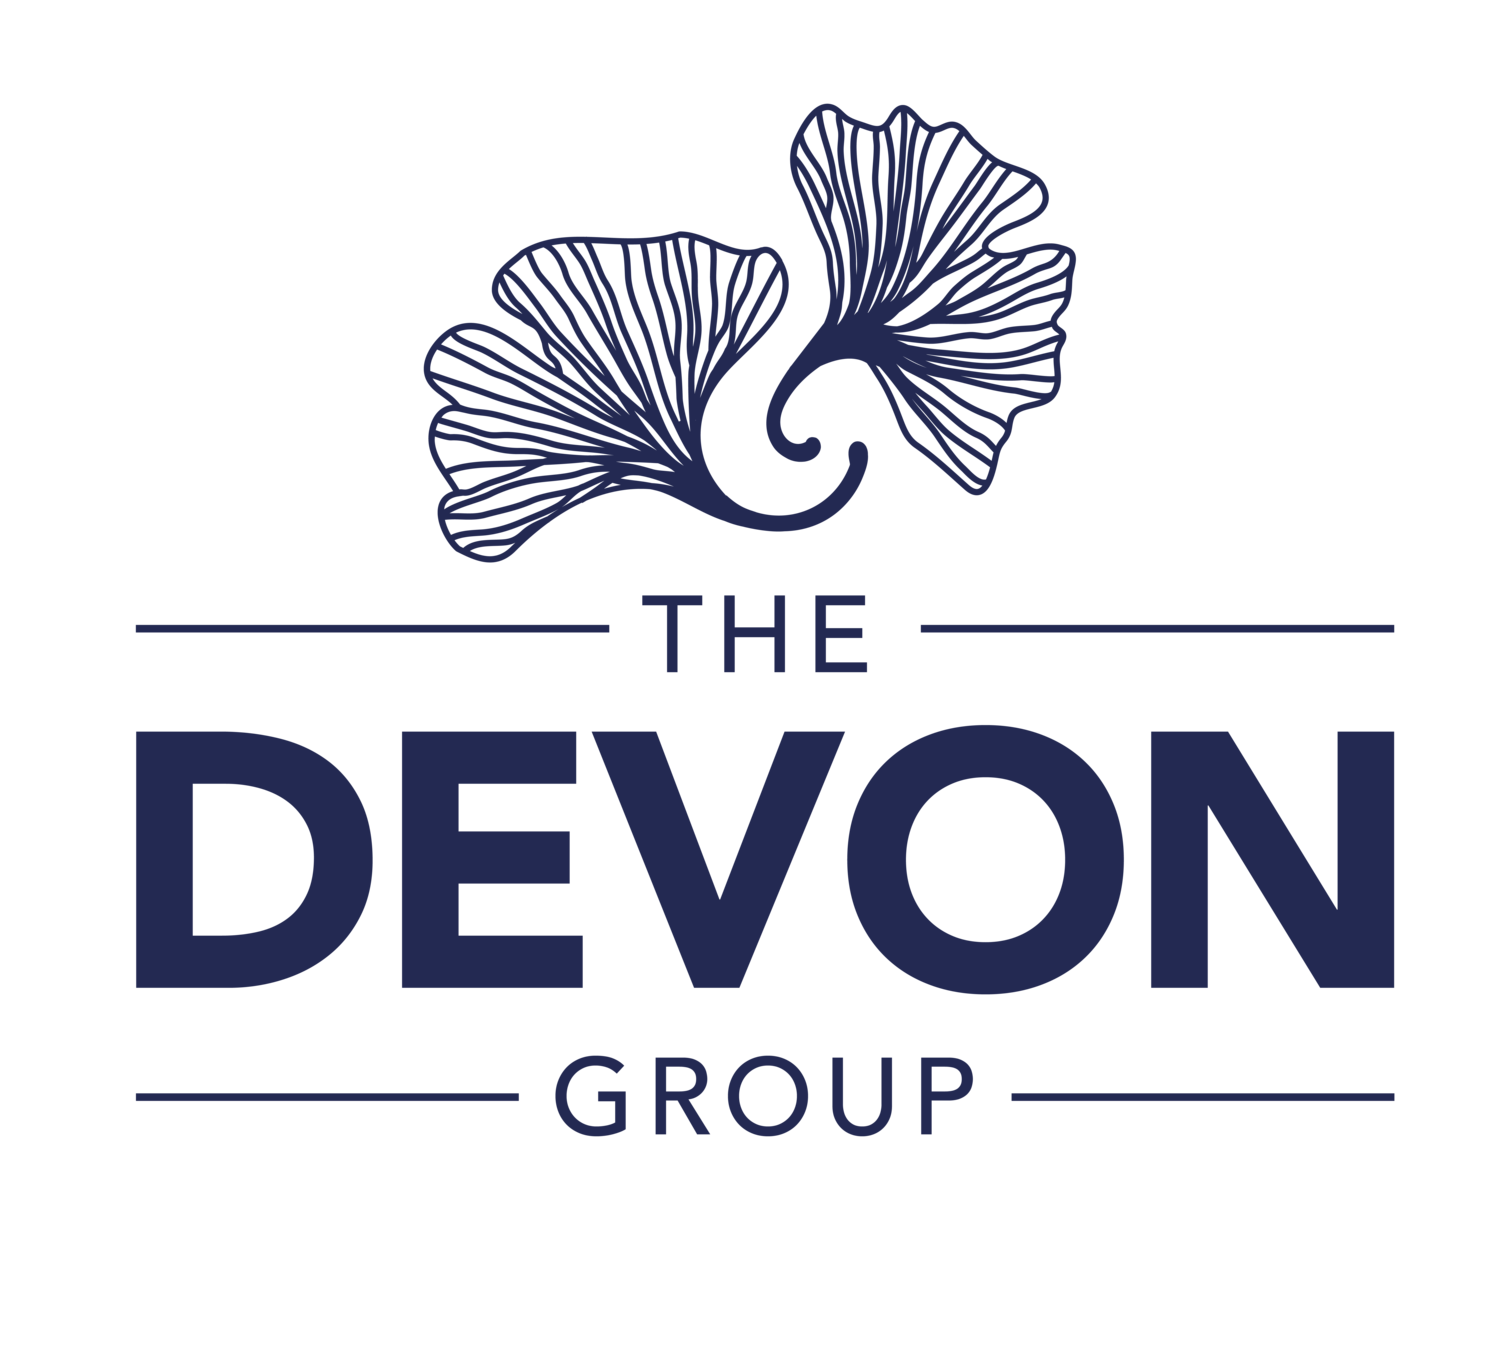 The Devon Group